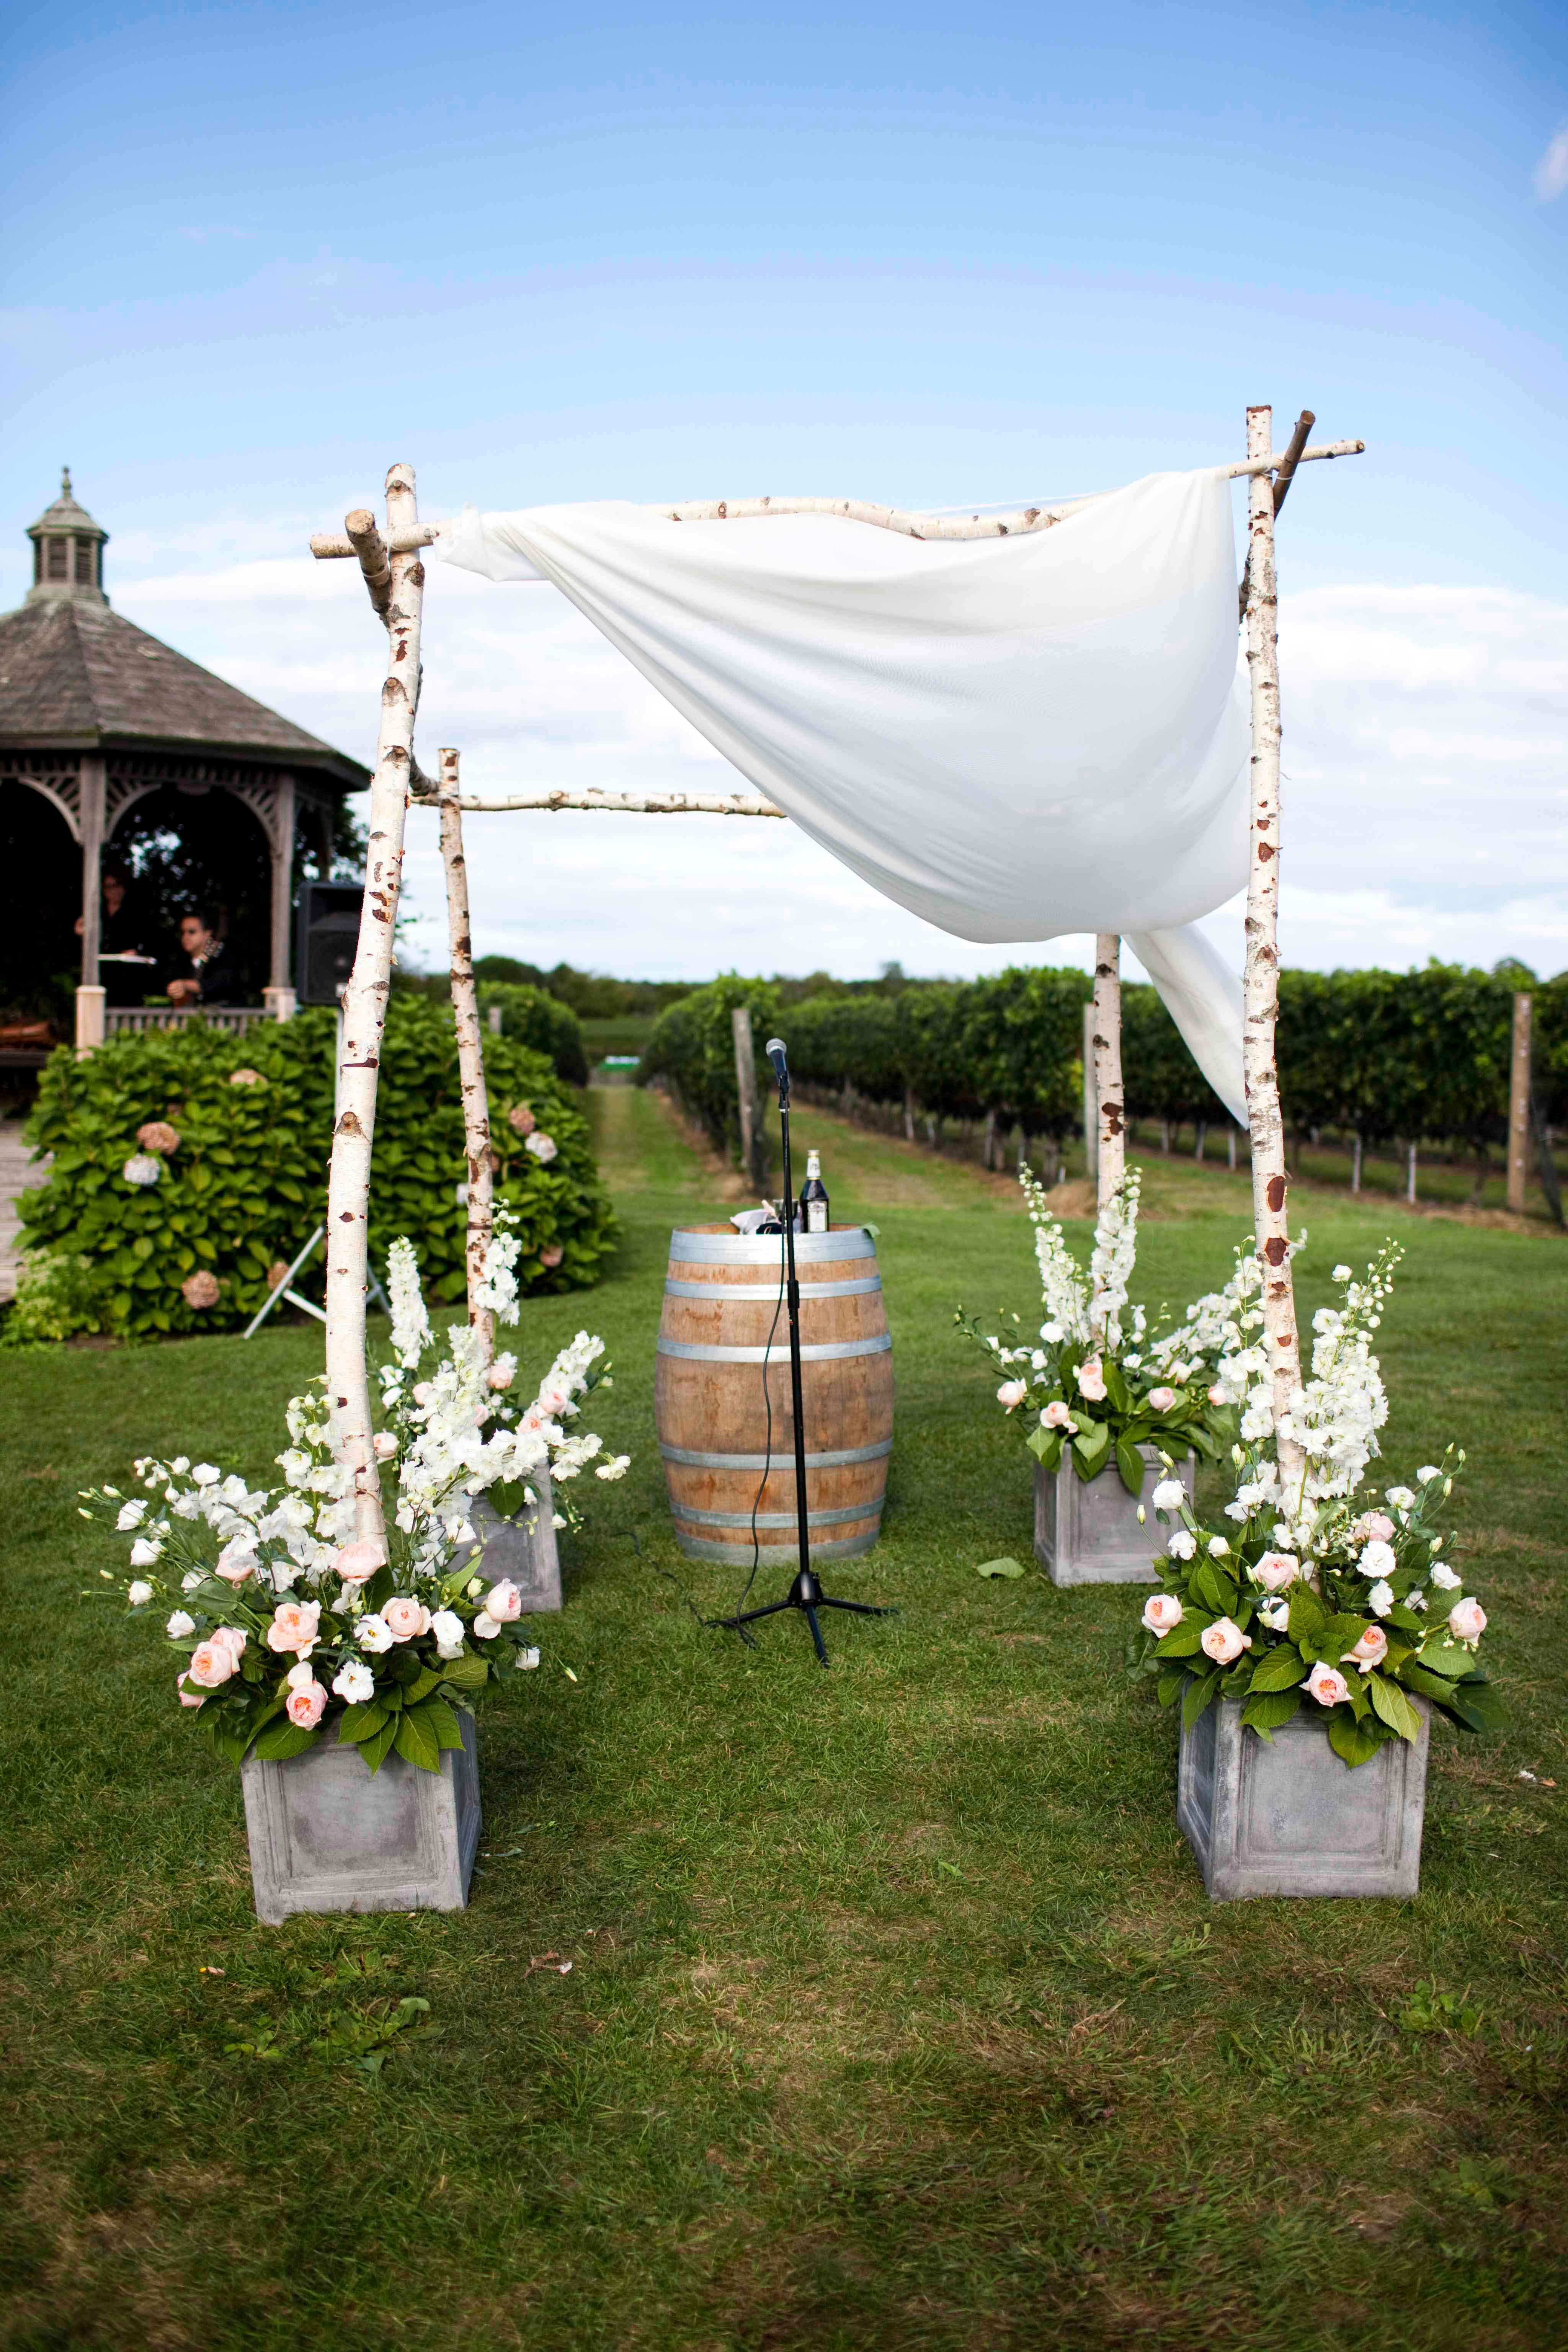 Birch tree trunk ceremony structure at outdoor wedding